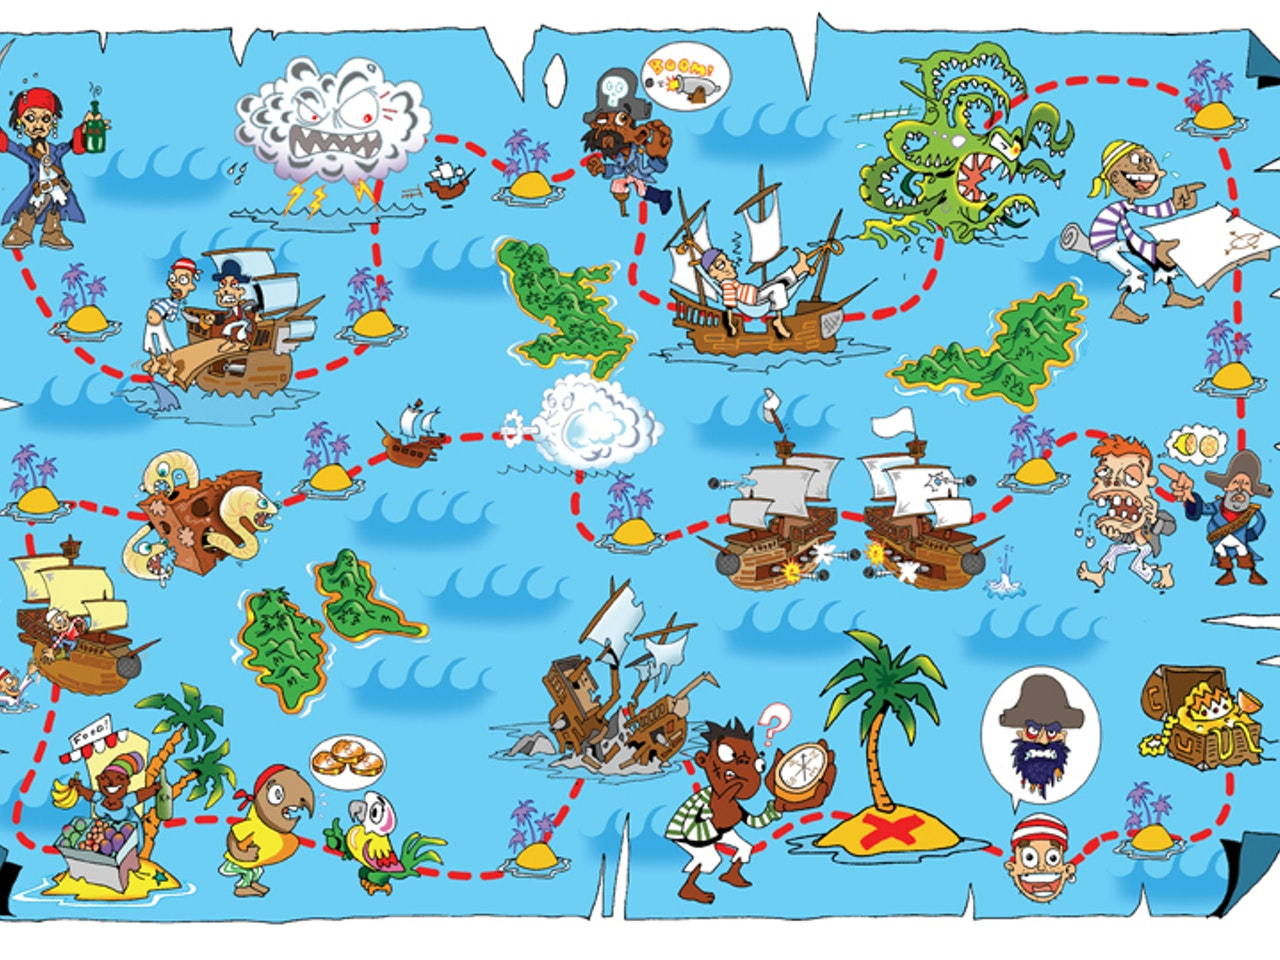 pirate game desert island krakken treasure map animation  humorous comical colourful graphic cartoon anime  educational historical  history galleon pirate ship sails navy sea  caribean cannon ball explorer Book cover illustration